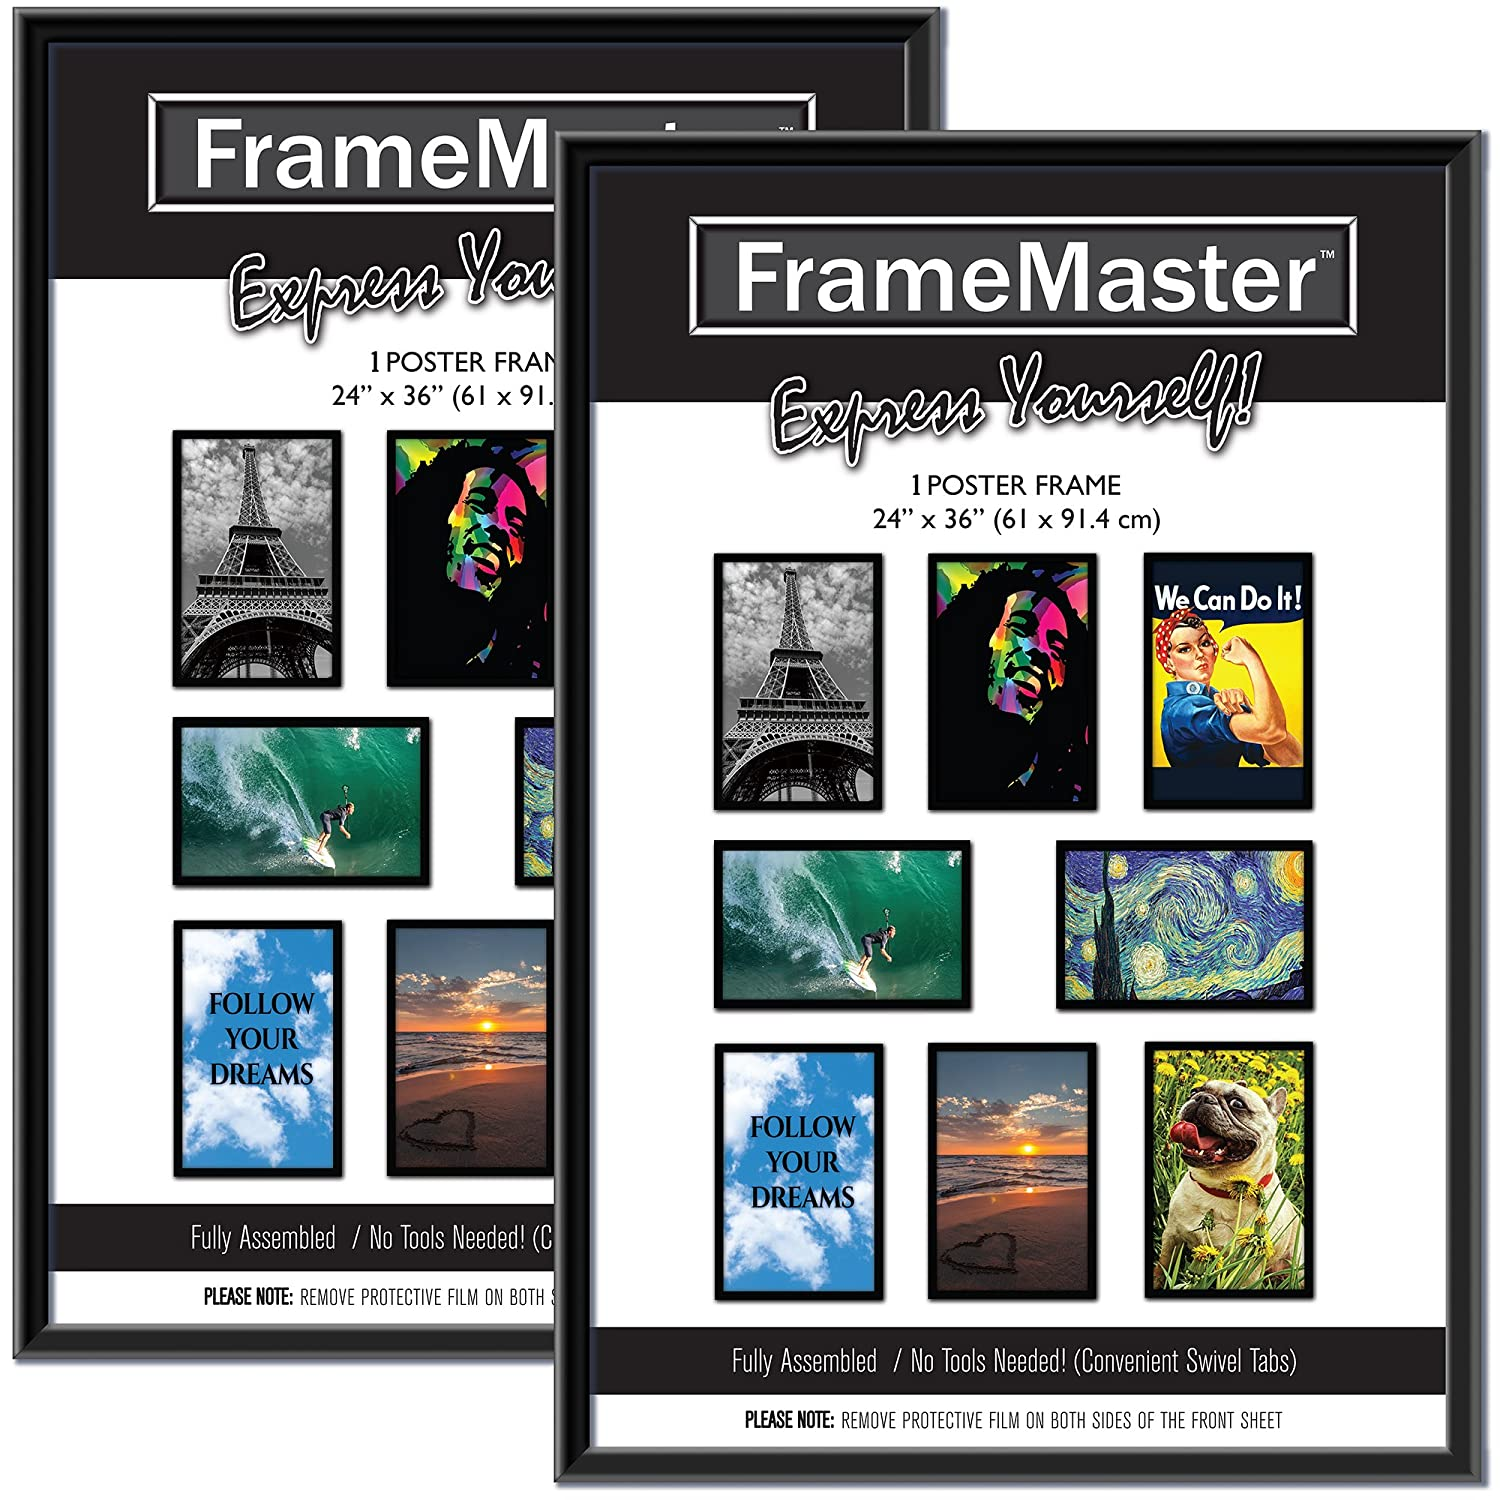 FrameMaster 24x36 Poster Frame (2 Pack, Black), Pre-Assembled Black Poster Frame 24 x 36, Sturdy Modern PVC Frame Design with MDF Backer Board for Wall Mounting, Set of 2